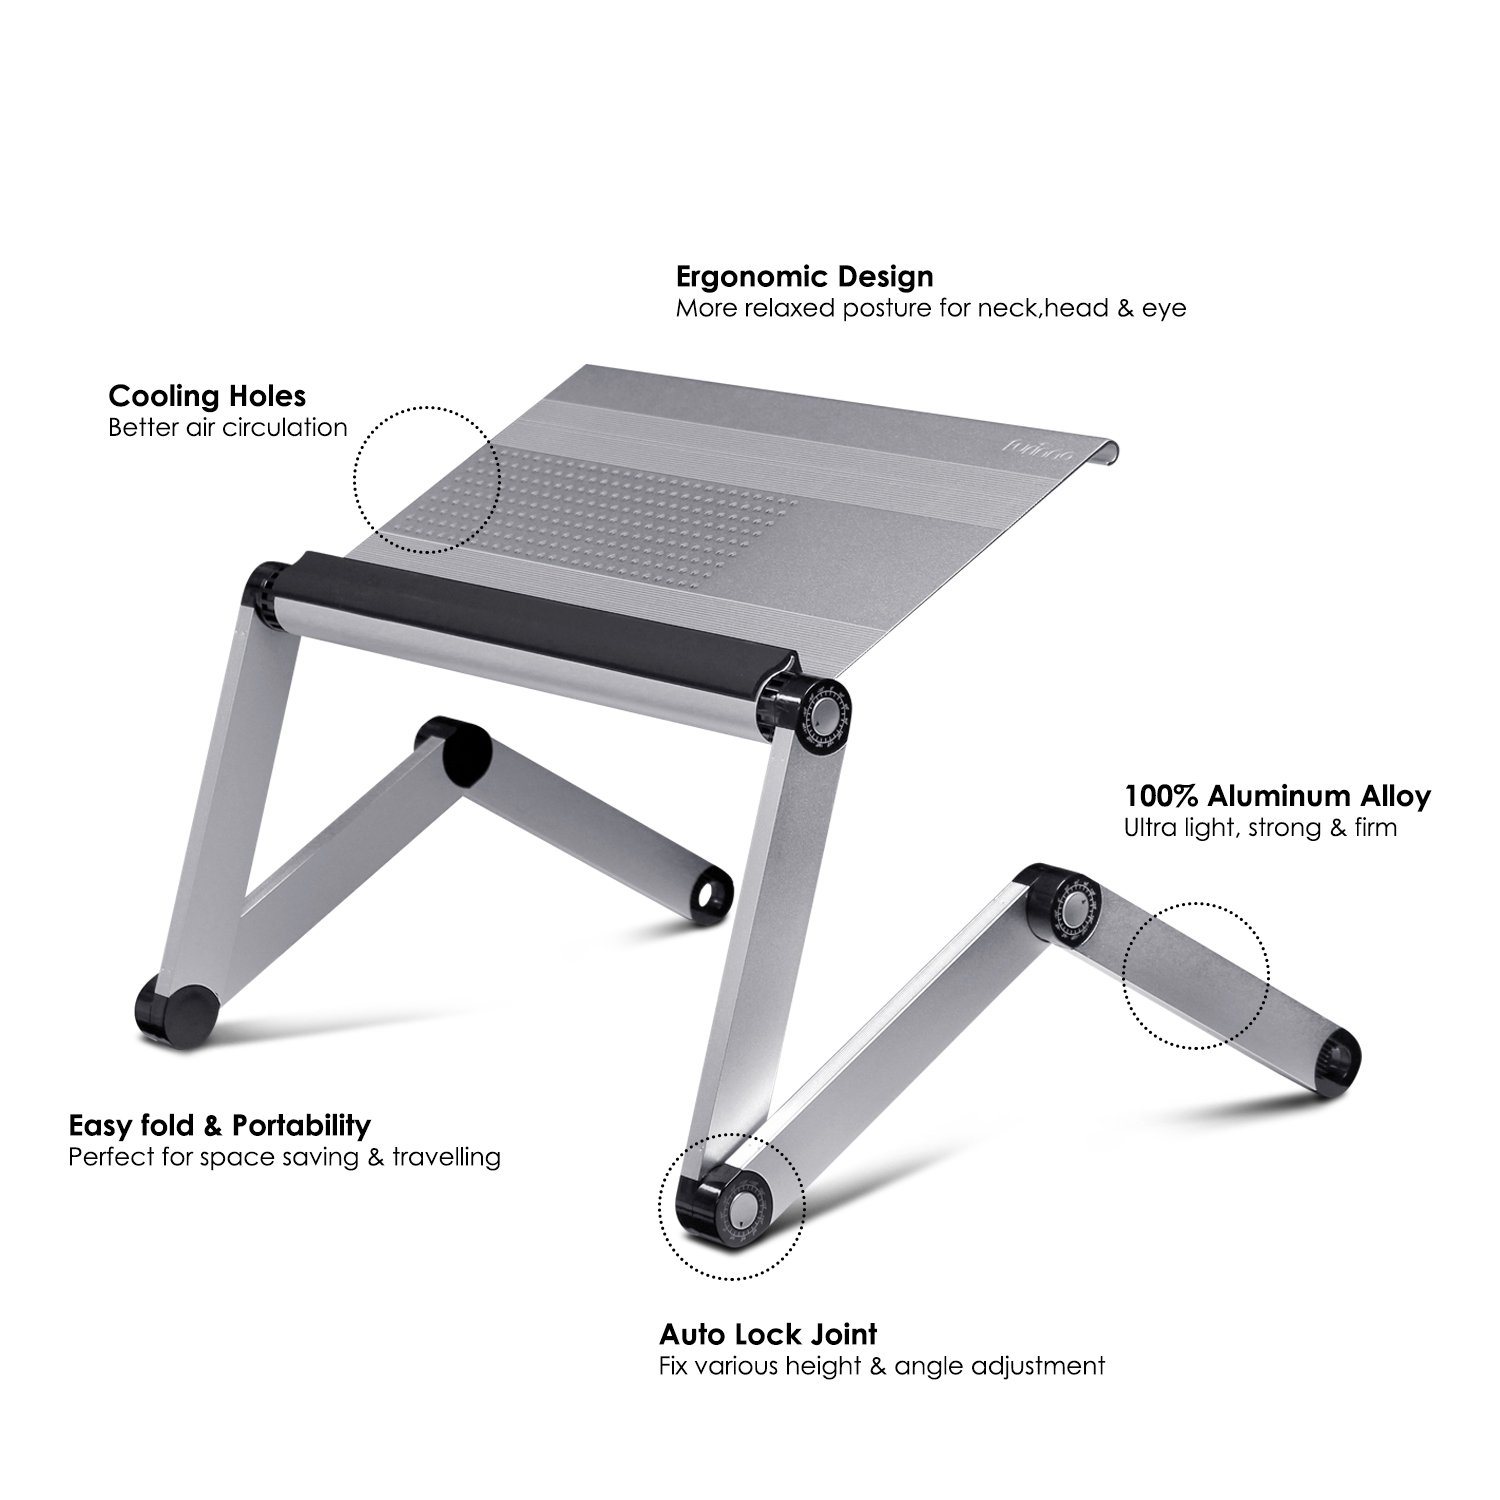 laptop folding holder standfolding home camping elegant tray for lapdesk adjustable portable party product ultideco at using reading stand bed bedsofaconvenience trayadjustable desk